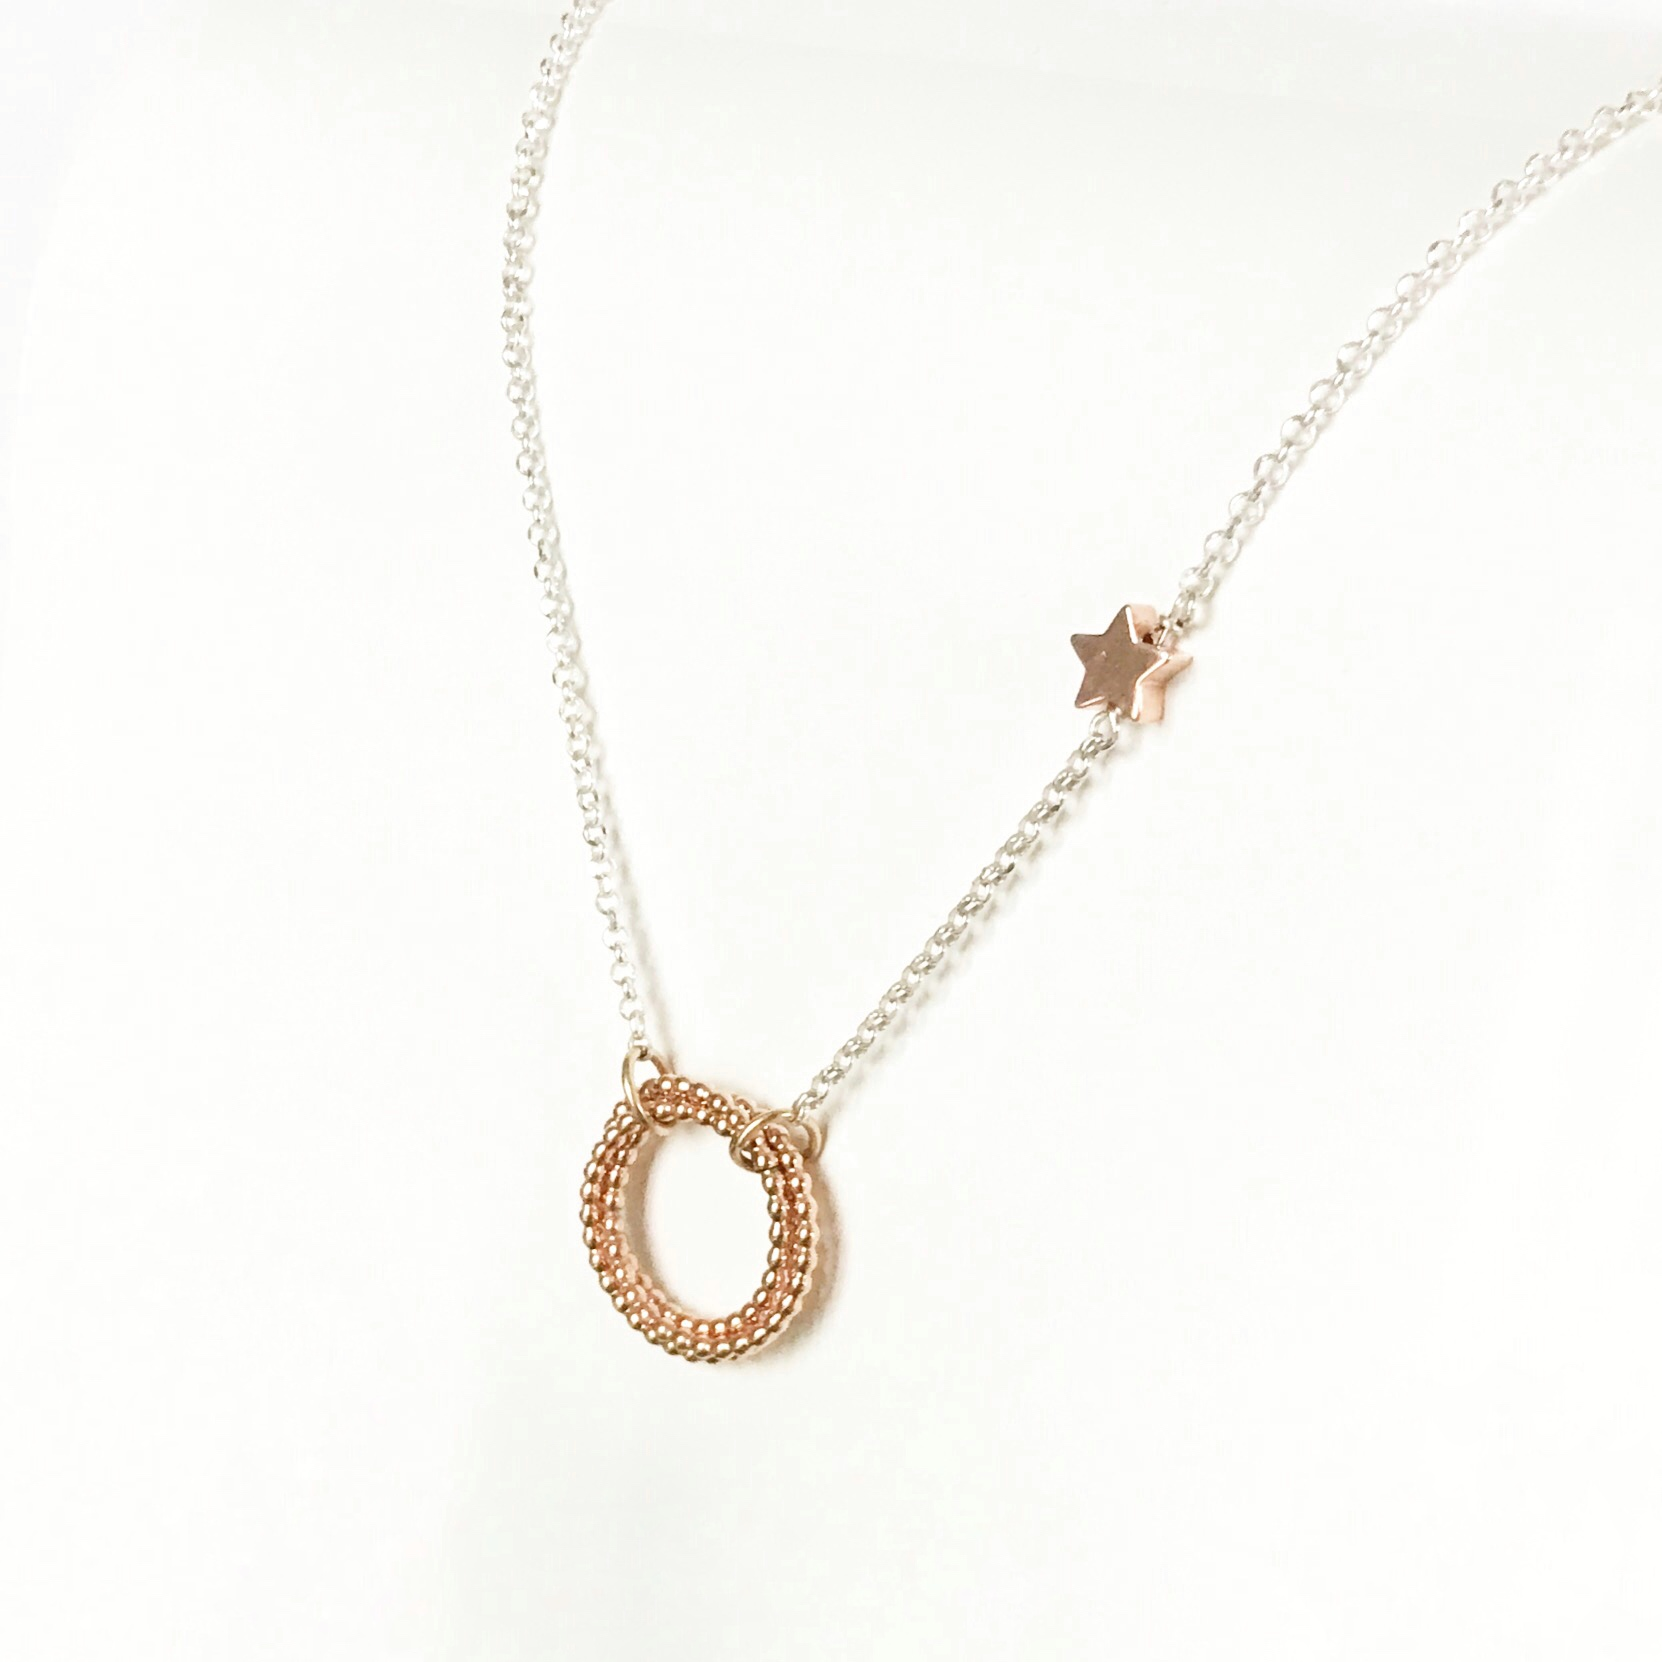 Silver and Rose Gold Necklace | Me Me Jewellery